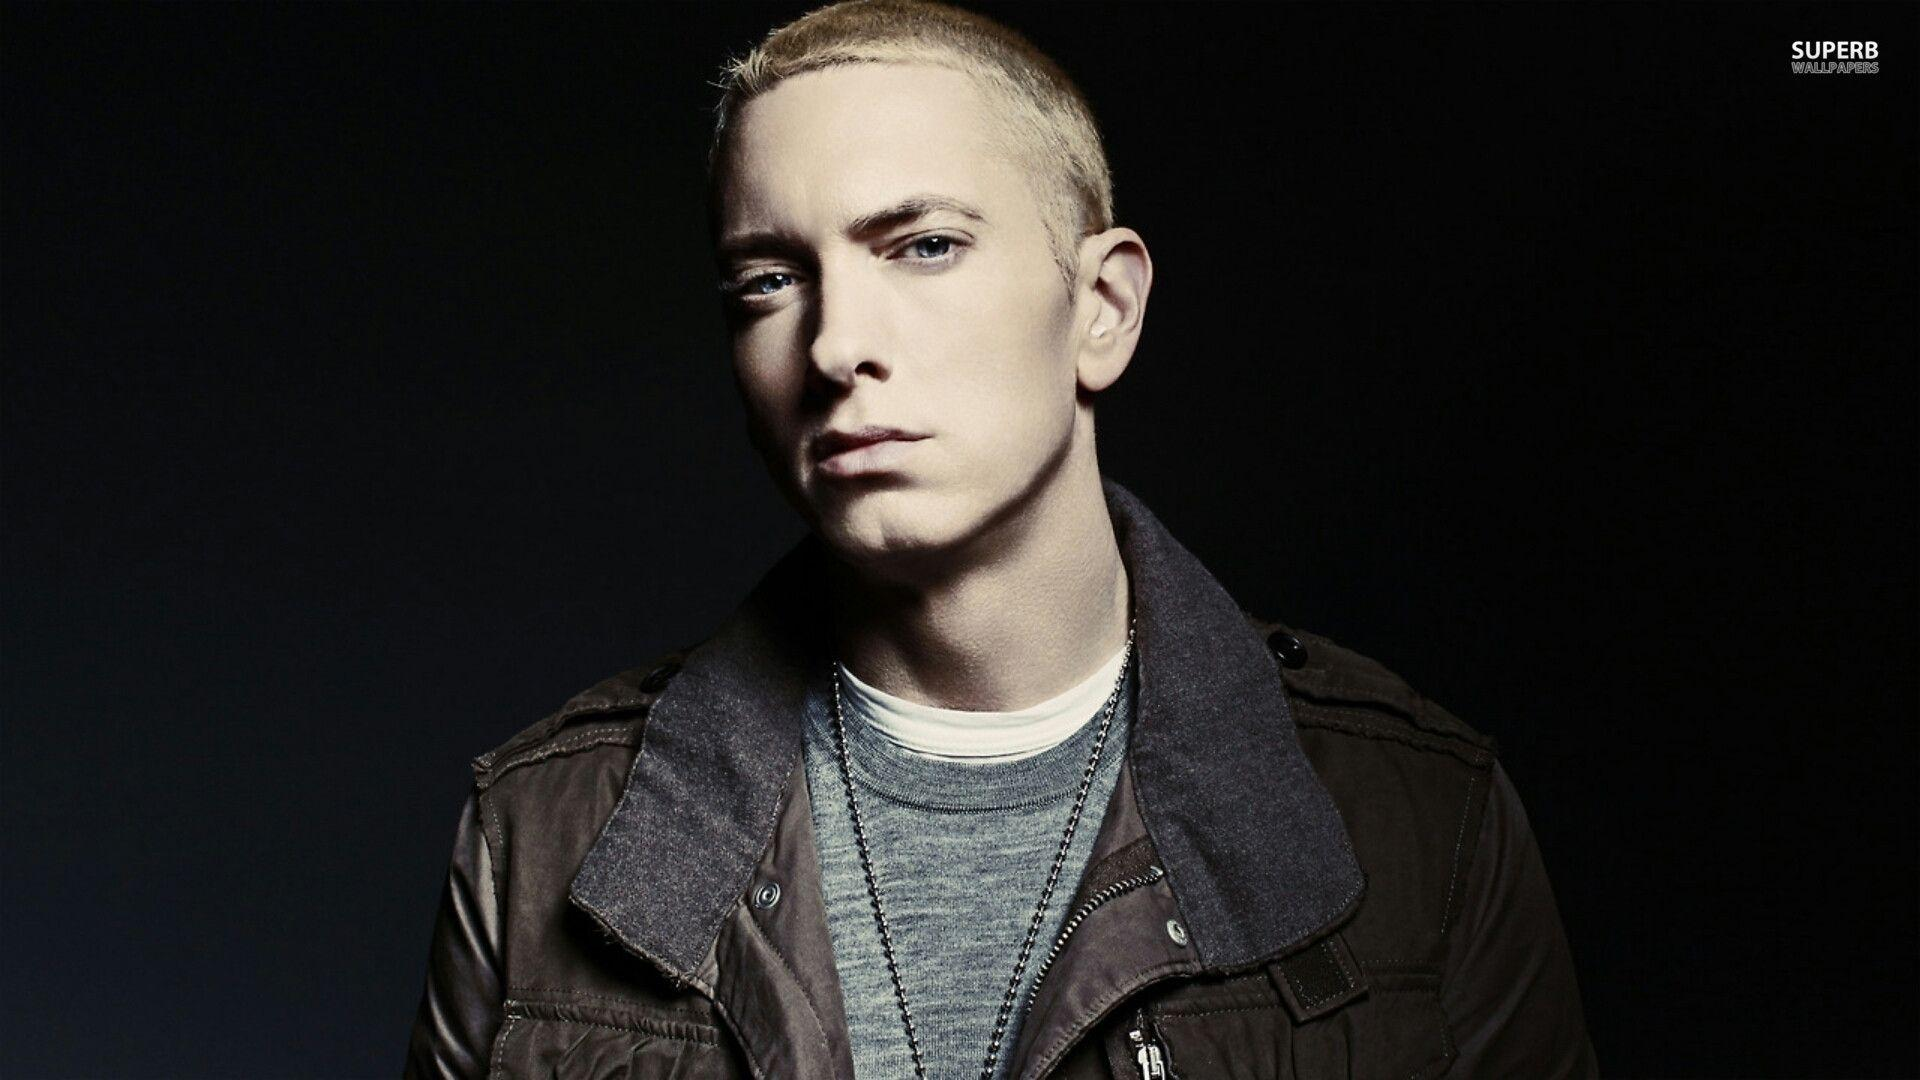 eminem wallpapers - photo #26